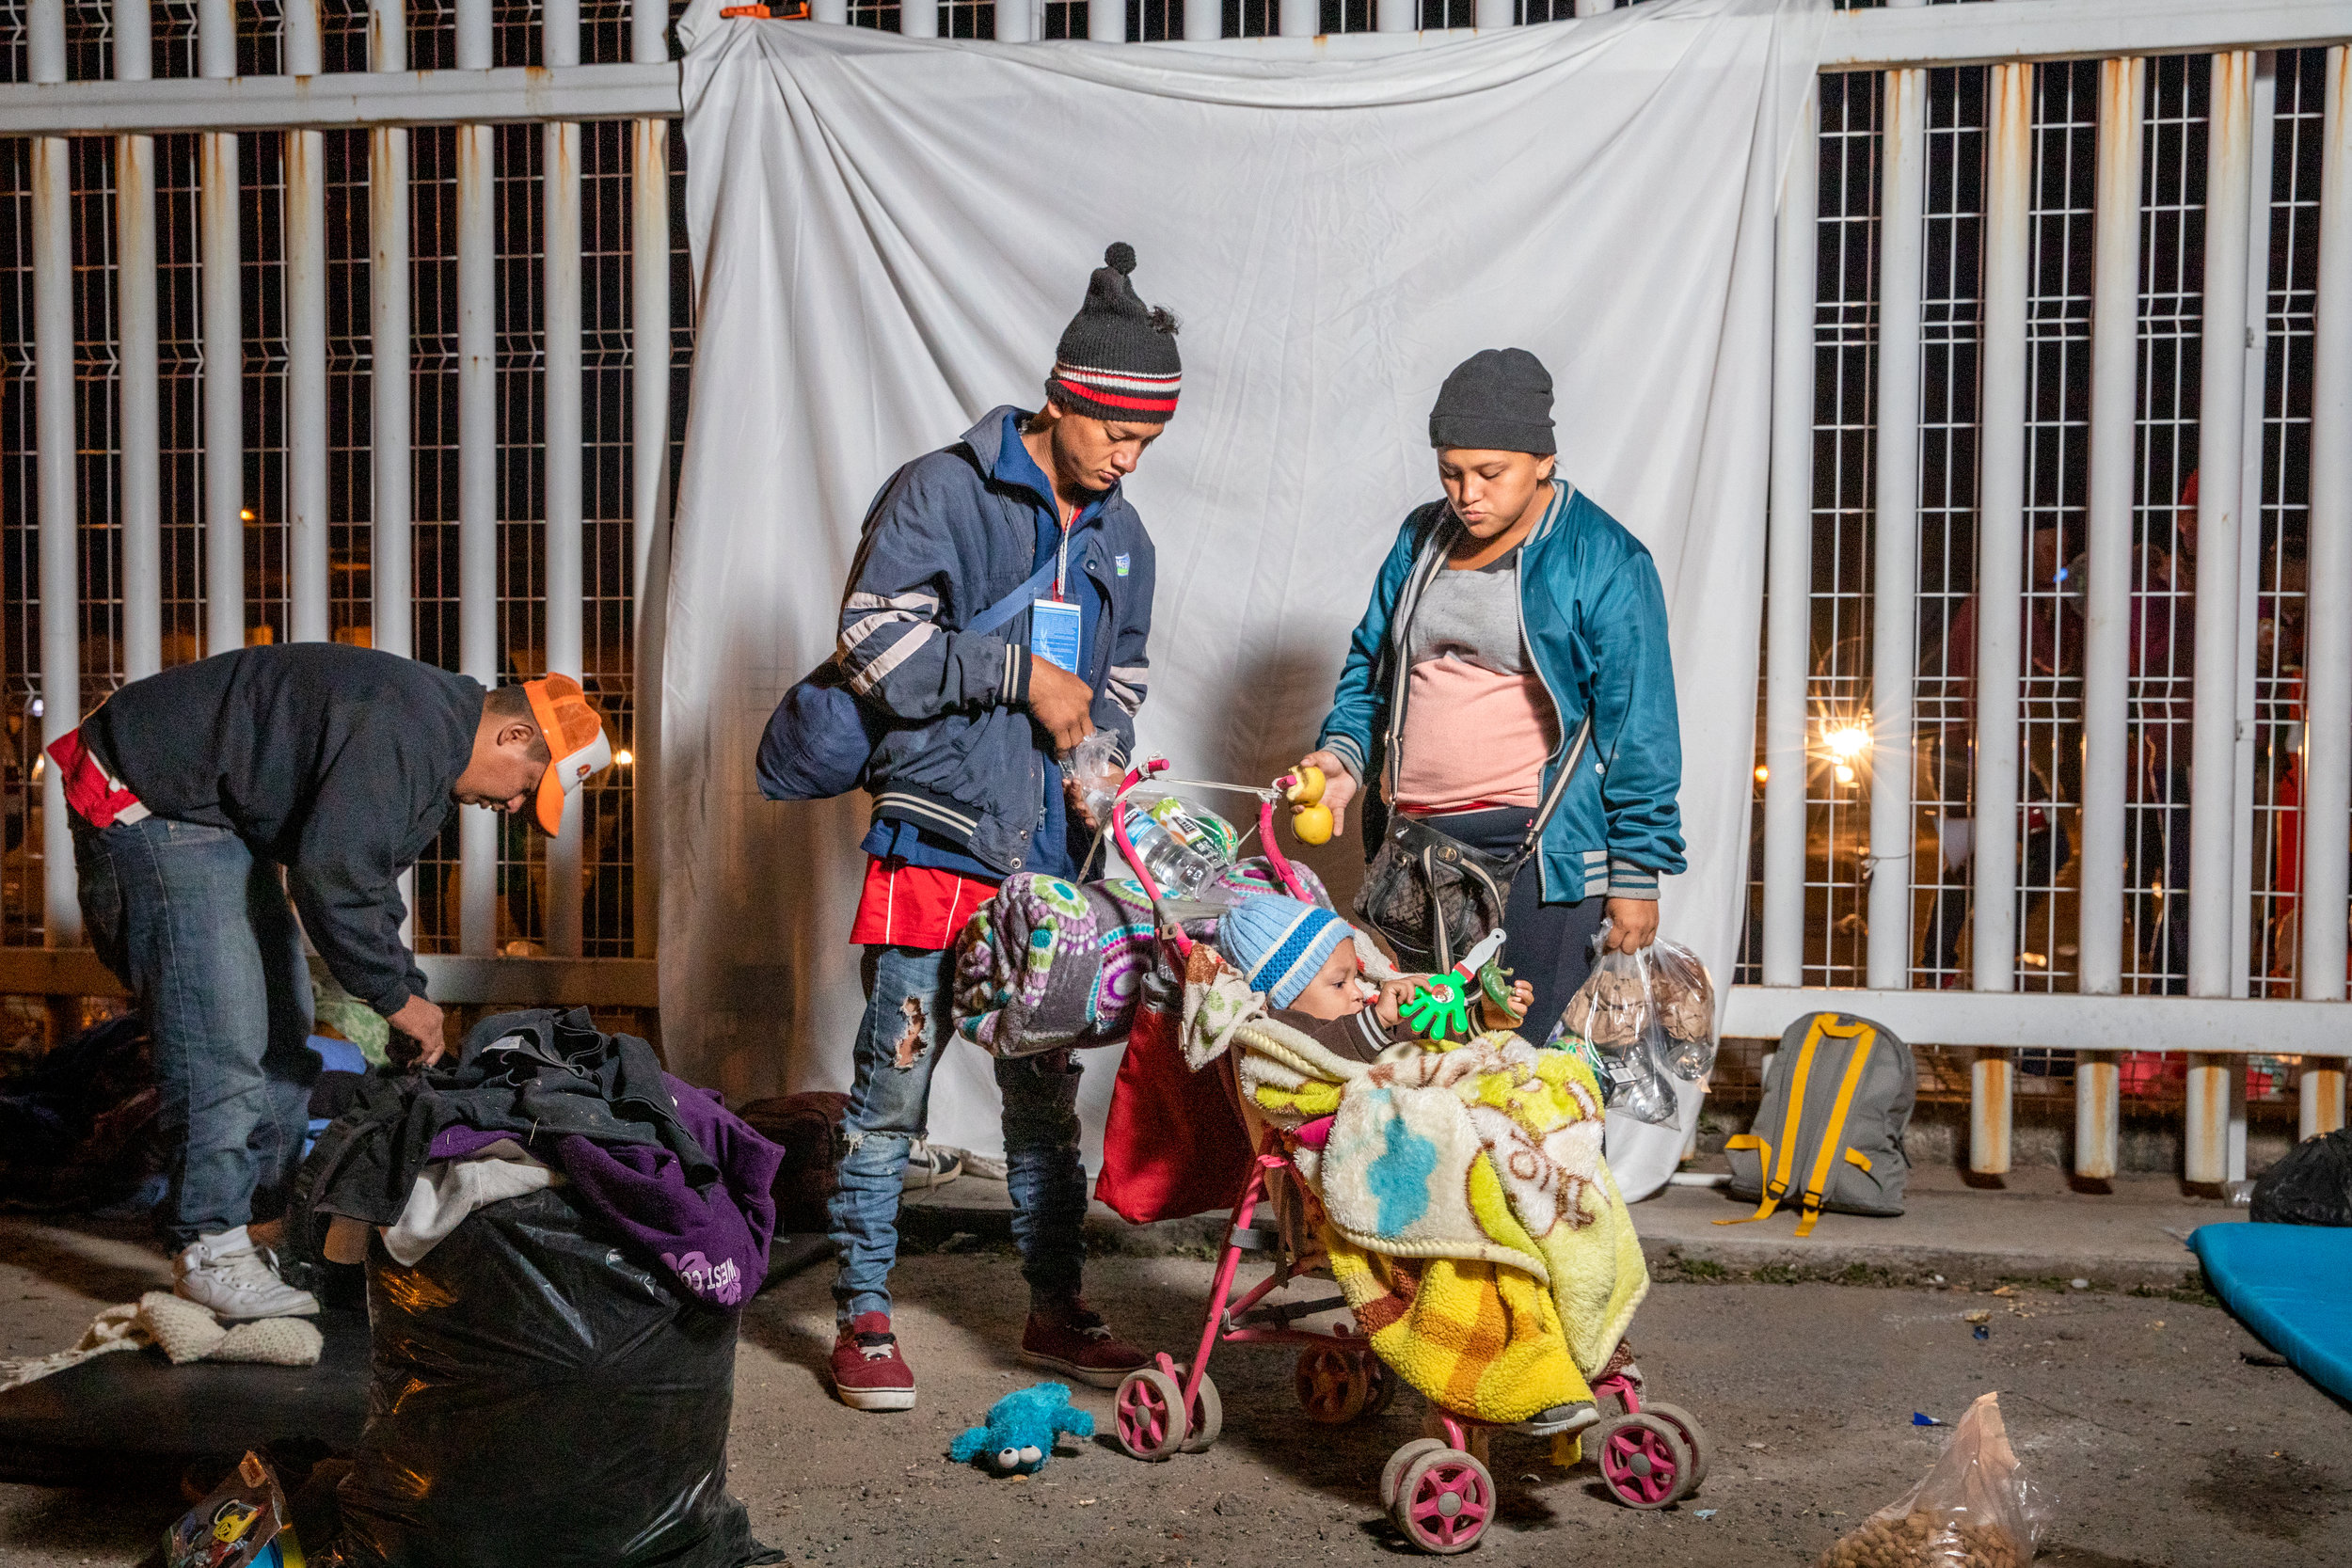 Javier Martínez Pérez, 21 years old, Riccy Bueso Aguilar, 17 years old and their son Yesuar Martínez Pérez, 2 years old, from Lima, Cortés, Honduras, pack up their belongings, before leaving with the migrant caravan, traveling from Central America, in Irapuato, Guanajuato, Mexico November 12, 2018.